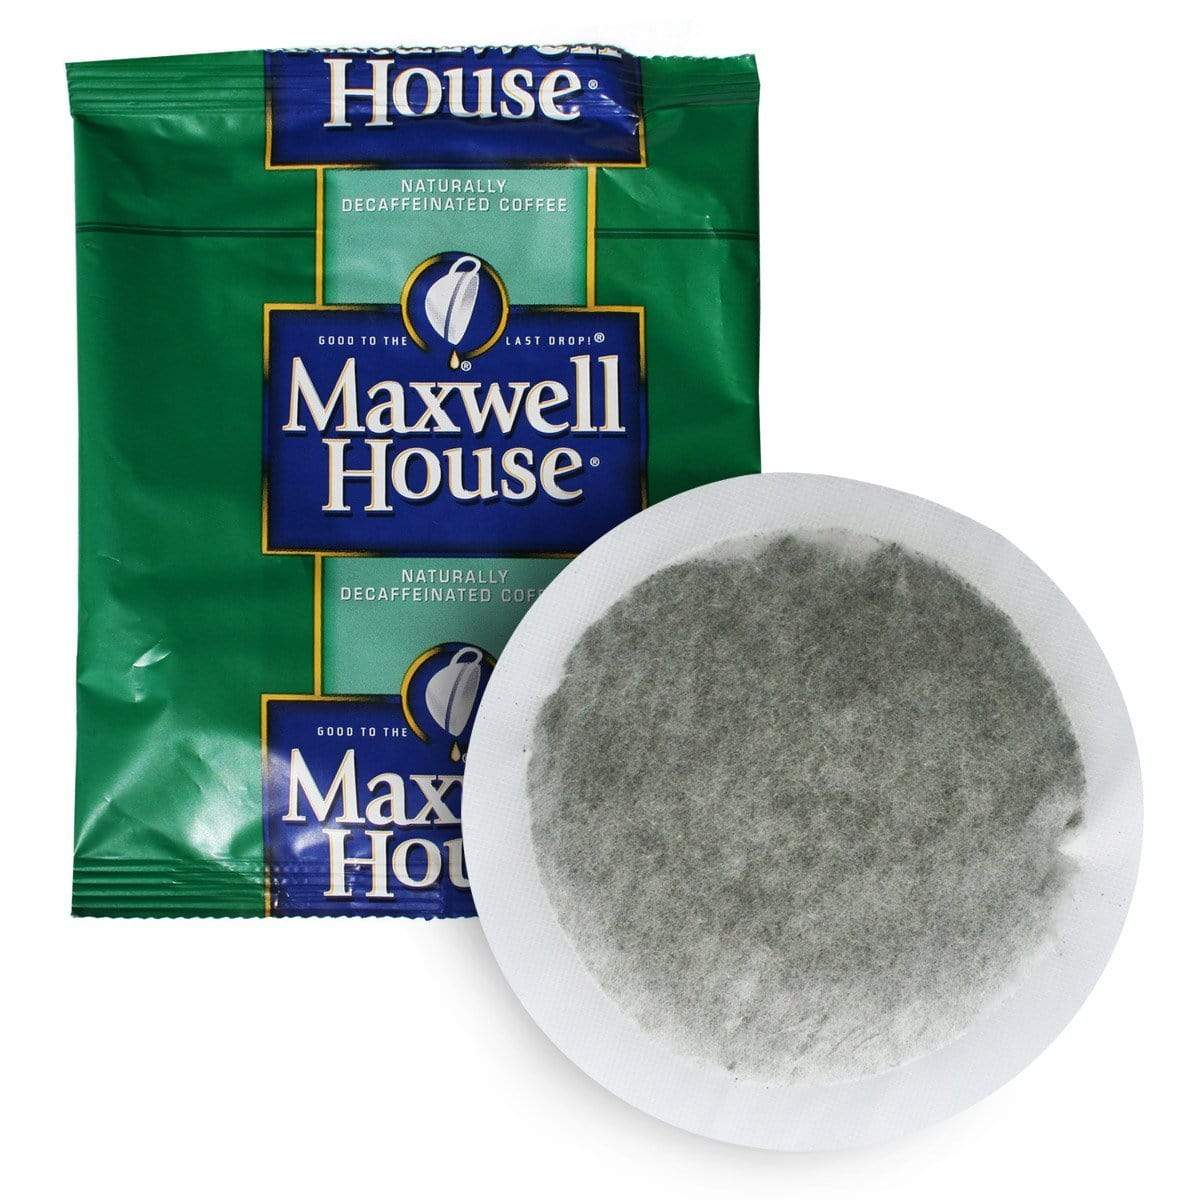 Maxwell House Hotel Filter Pack Coffee - DECAF - In Room 4 Cup Size (0.7oz), Pack of 100 from Vistar